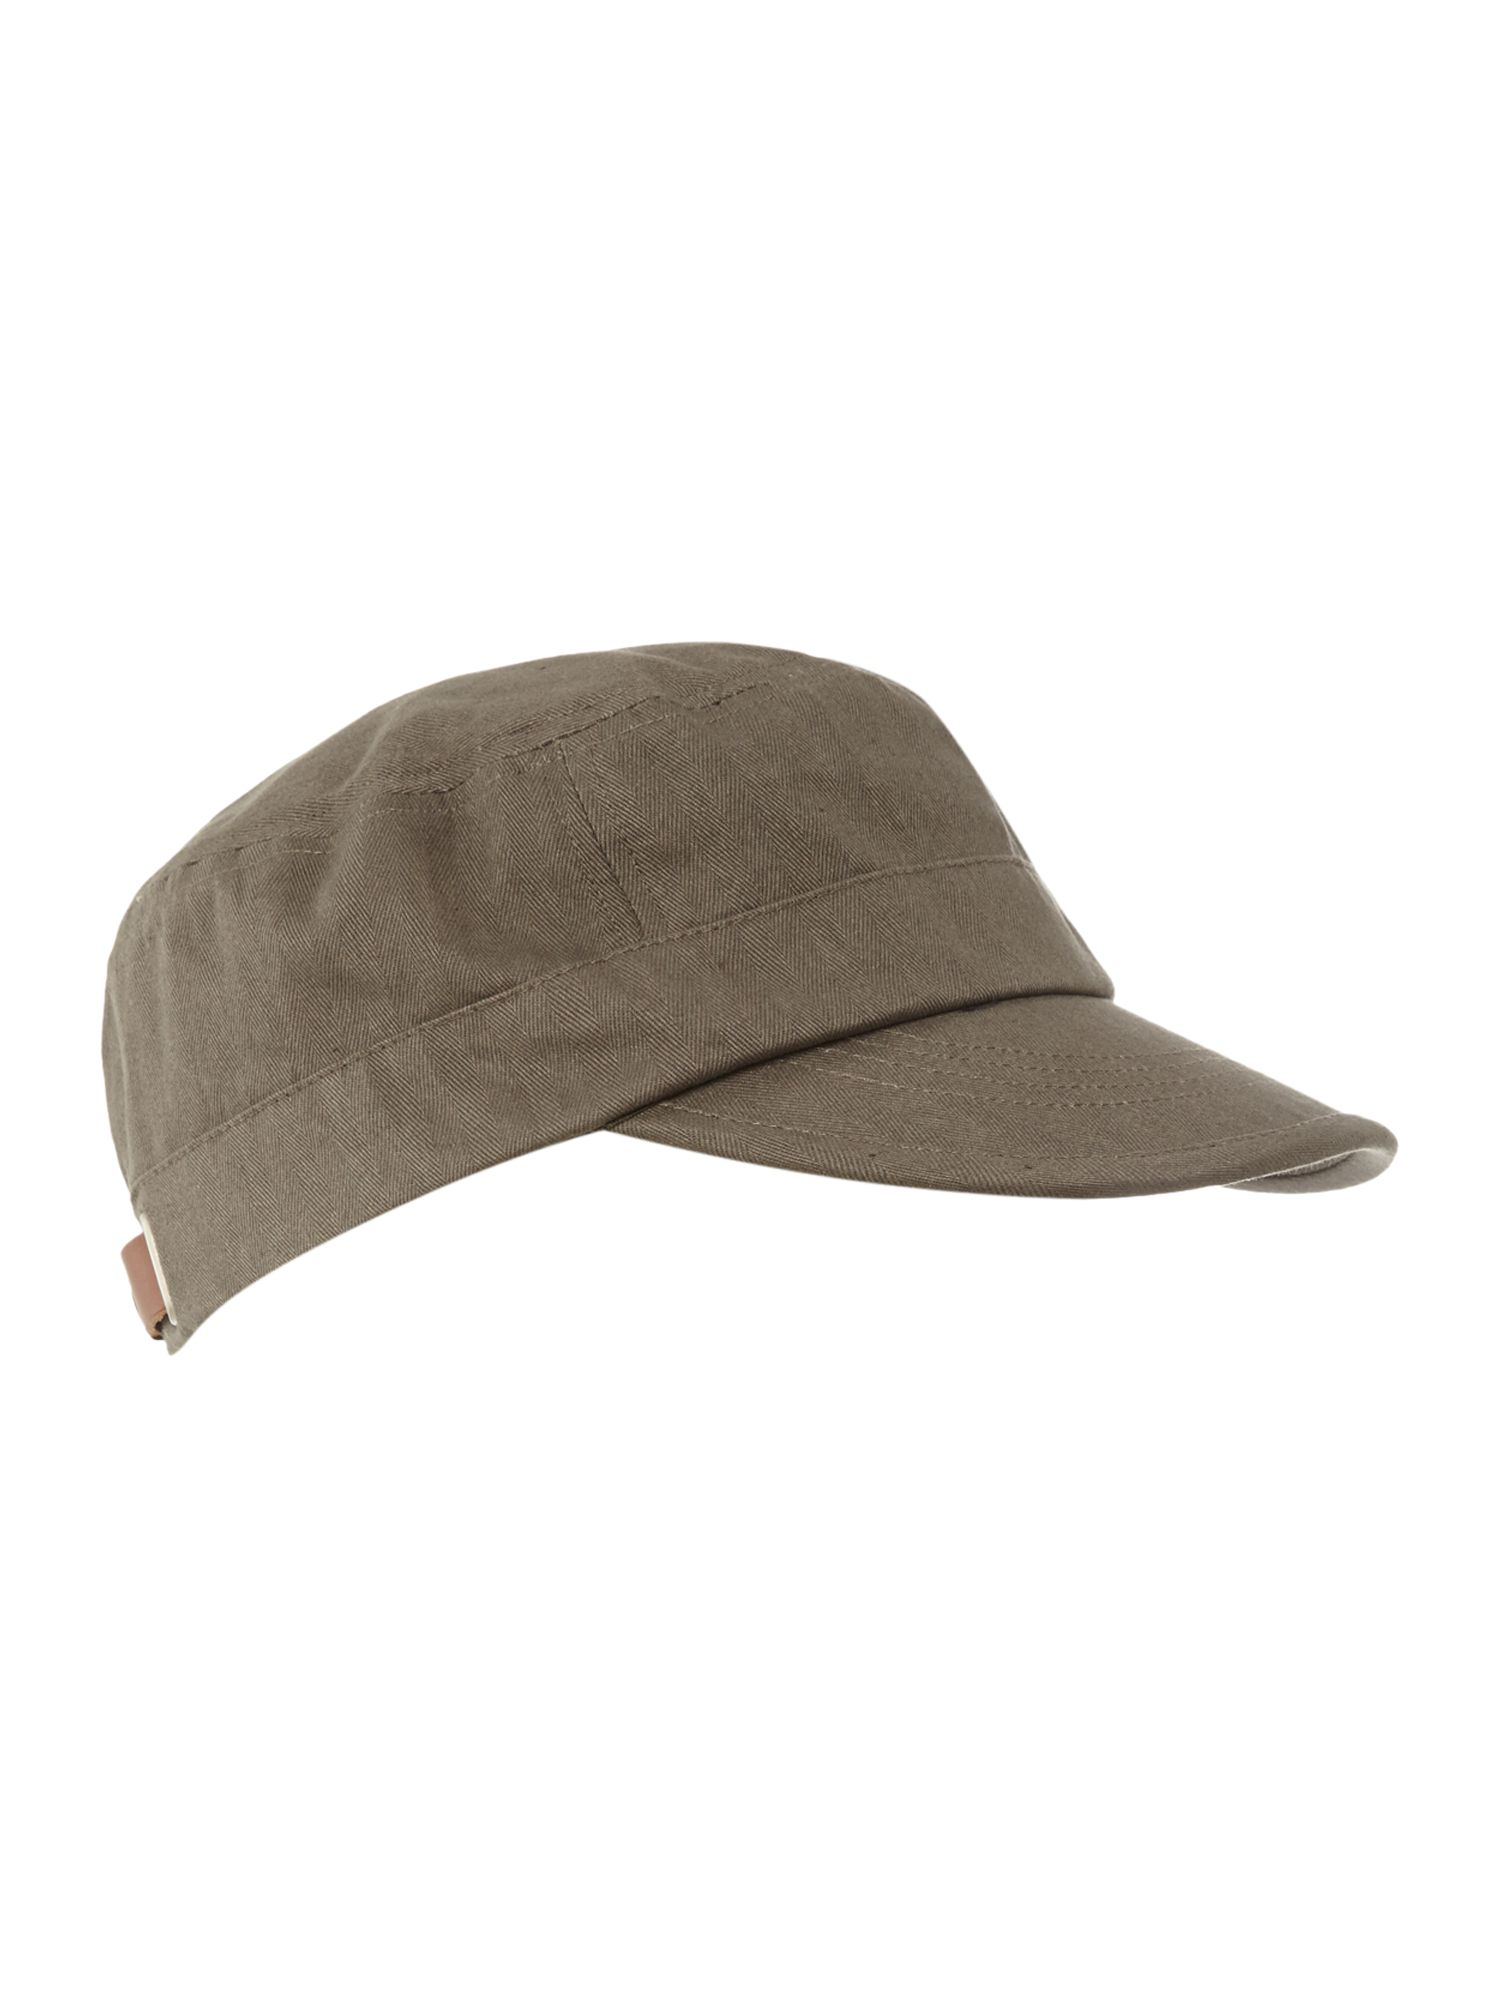 Lyst - Fred Perry Train Driver Style Hat in Natural for Men f34cf20d40a